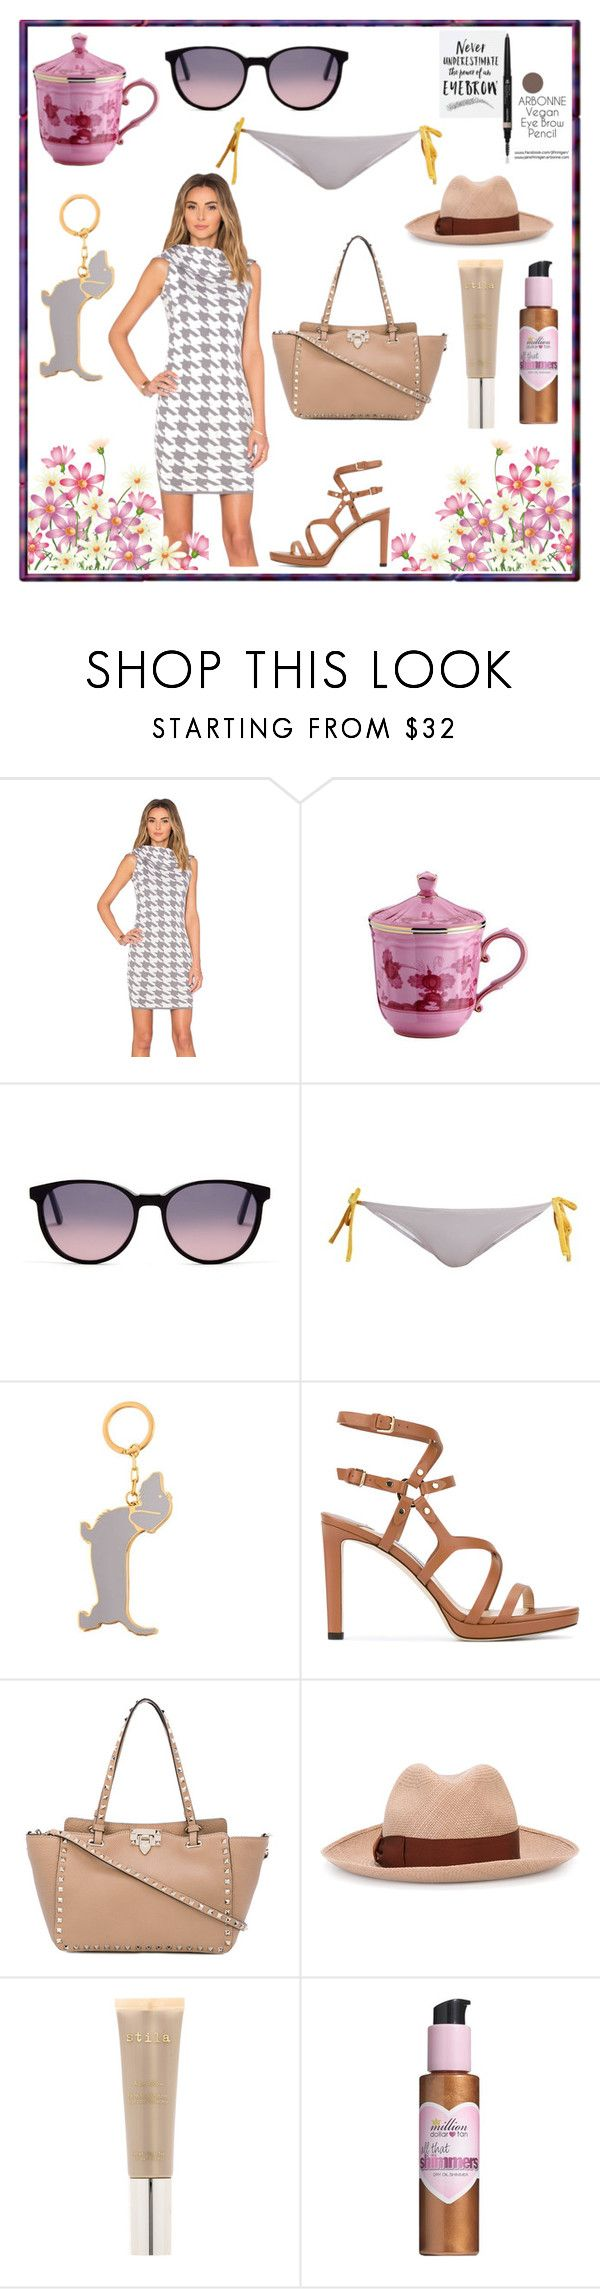 """summer essential"" by kristen-stewart-2989 ❤ liked on Polyvore featuring Elliatt, Richard Ginori, L.G.R, Roxana Salehoun, Thom Browne, Jimmy Choo, Valentino, Borsalino, Stila and Million Dollar Tan"